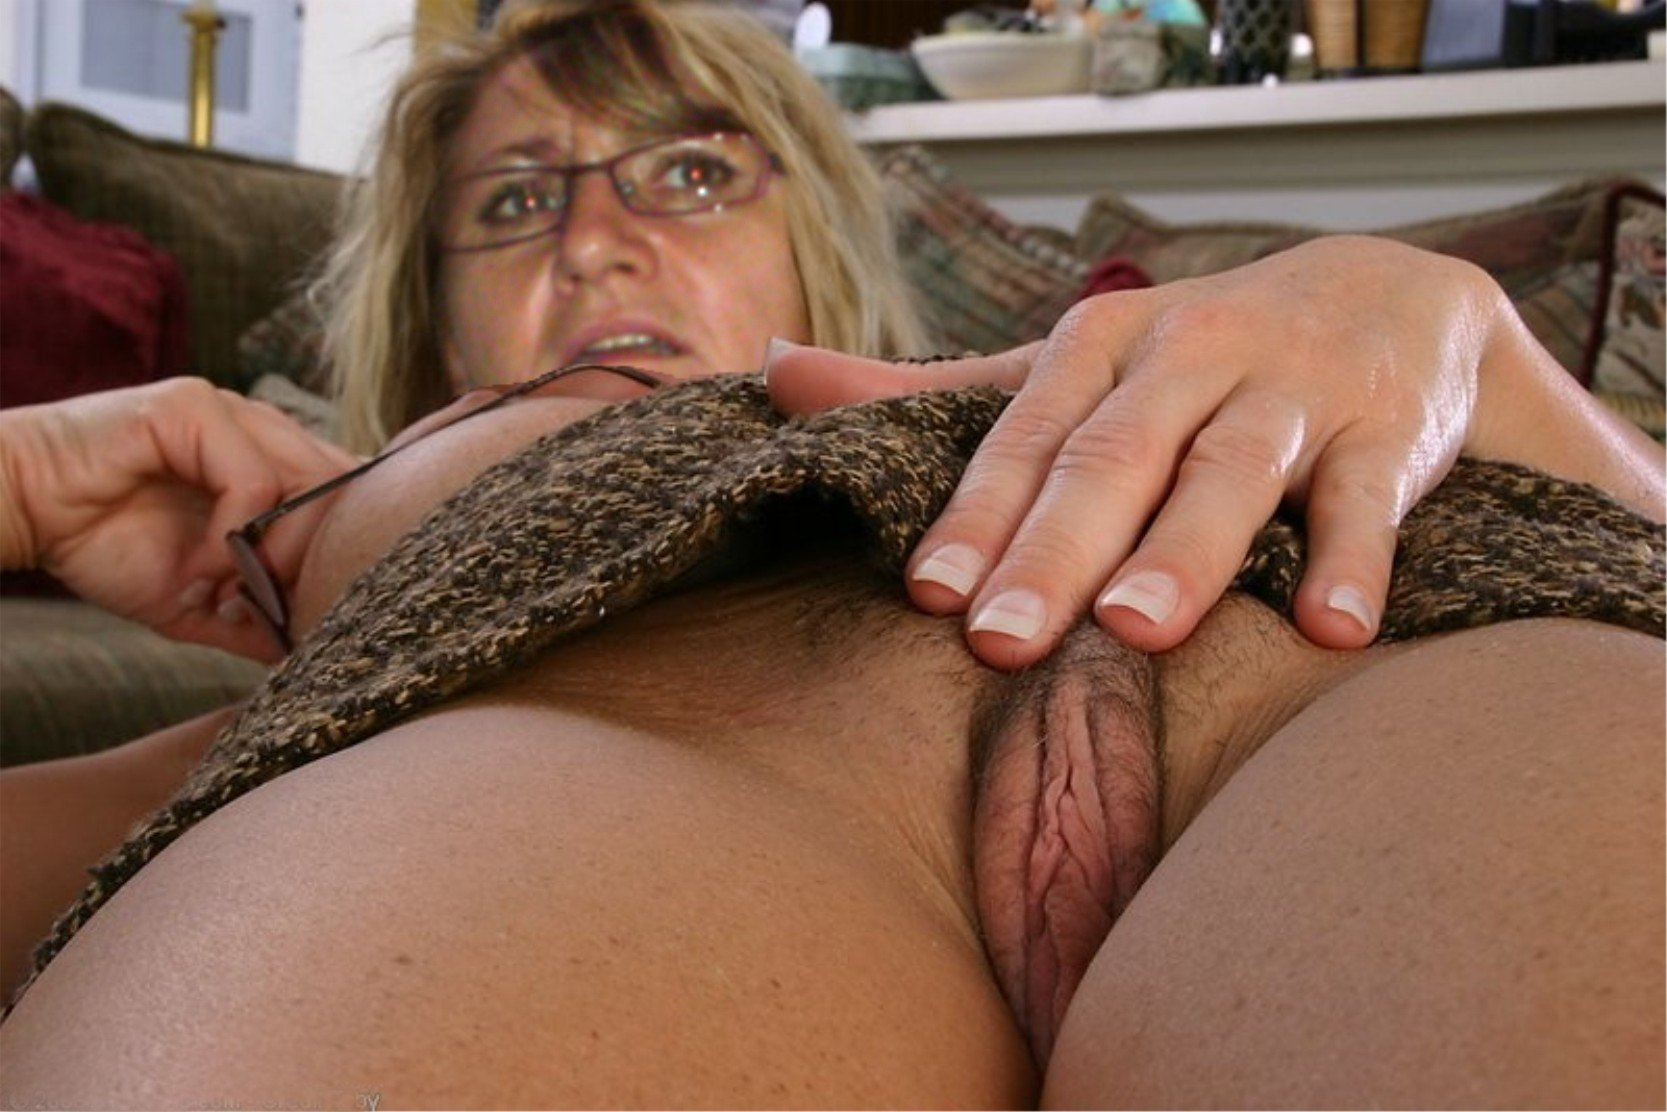 Sexy Mature English Women Shows Pussy